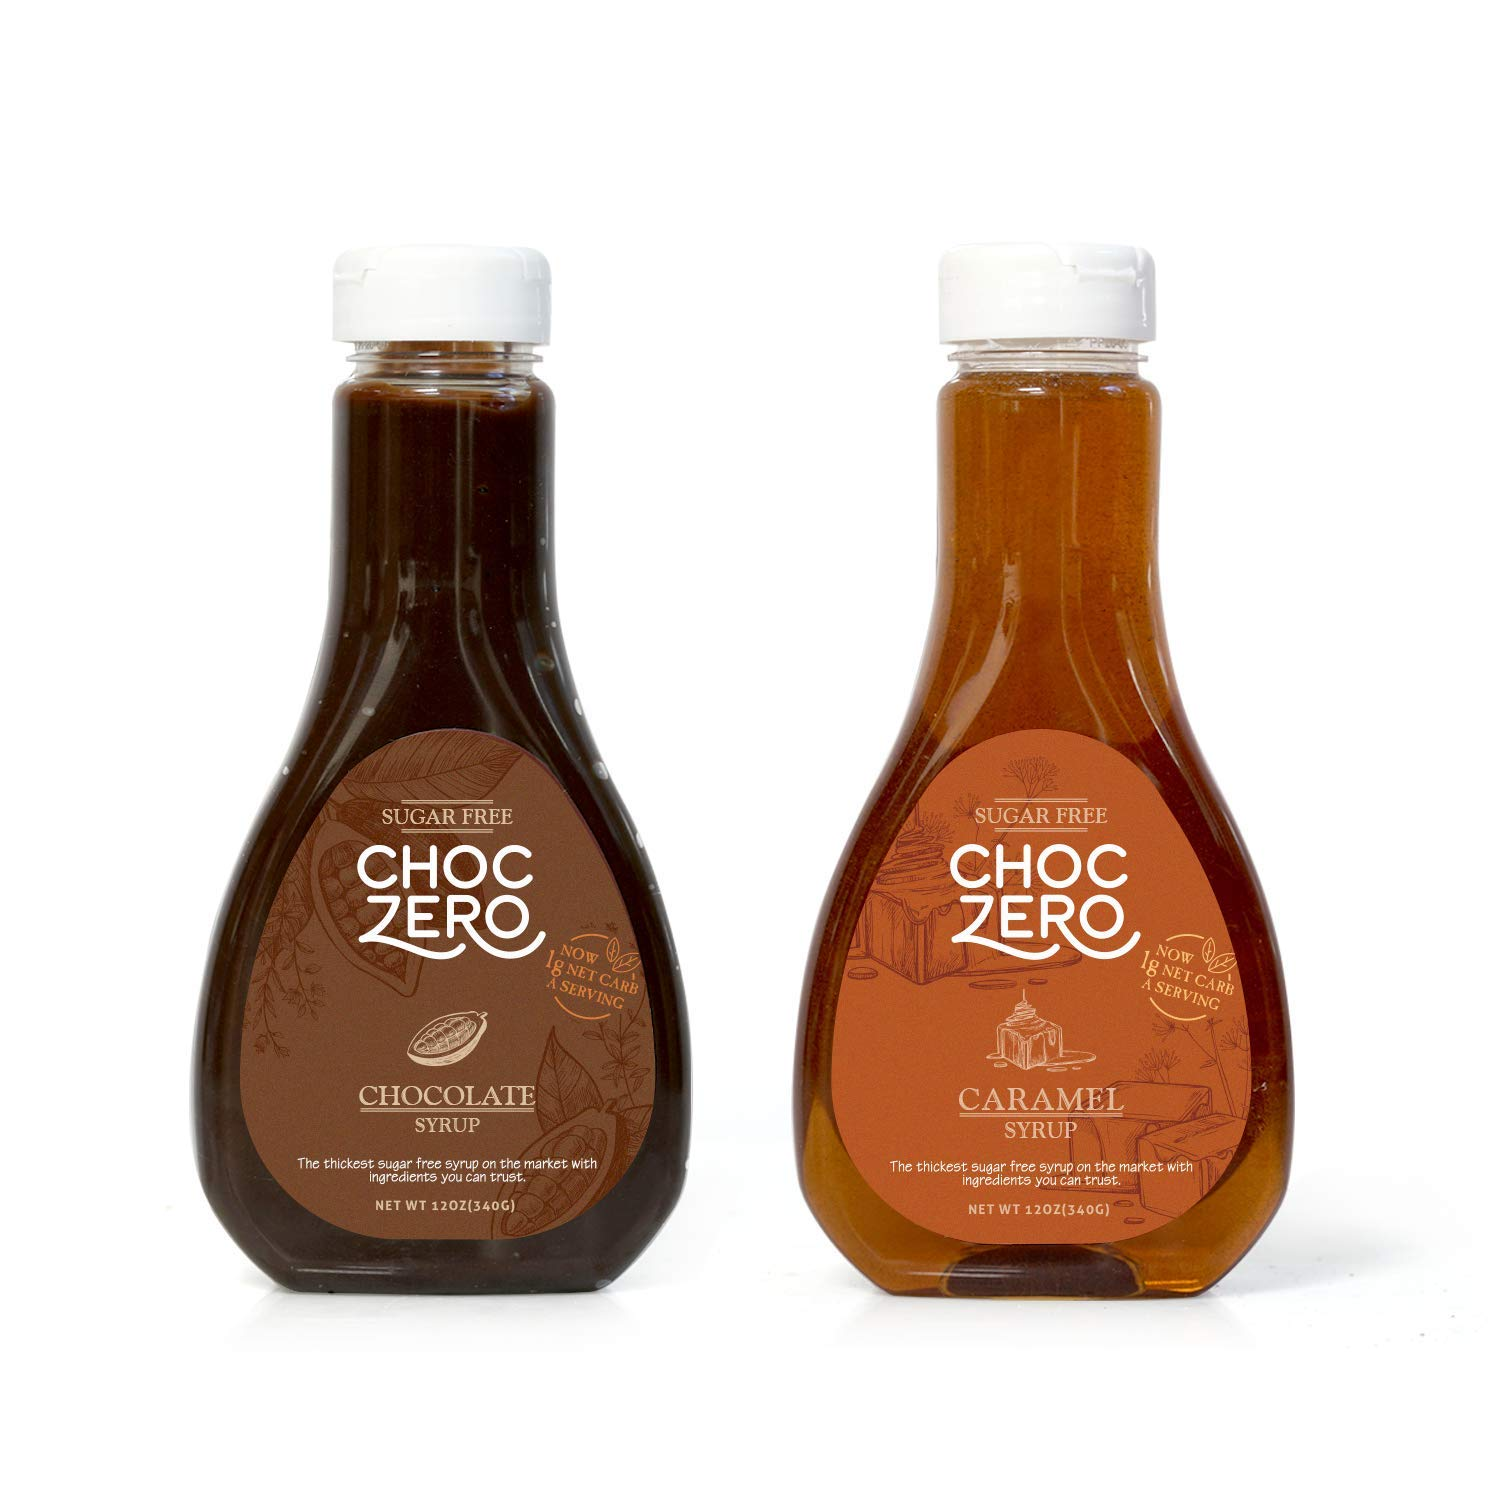 ChocZero's Chocolate and Caramel Syrup. Sugar Free, Low Net Carb, No Preservatives. Gluten Free. No Sugar Alcohols. Great for waffles and pancakes (2 bottles)